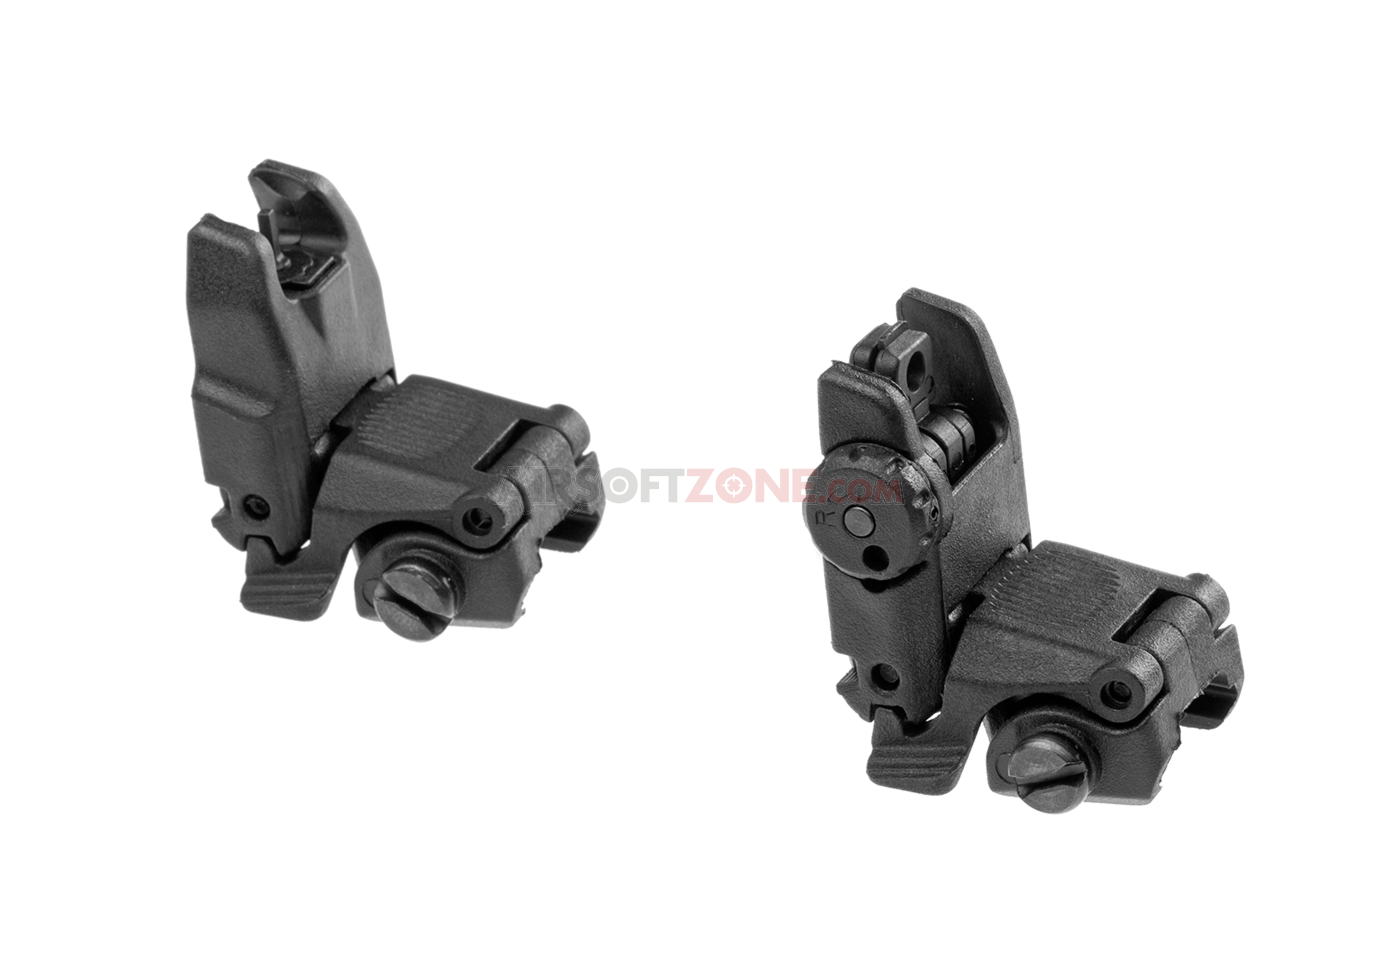 Fbus Gen 2 Sights - Black imagine